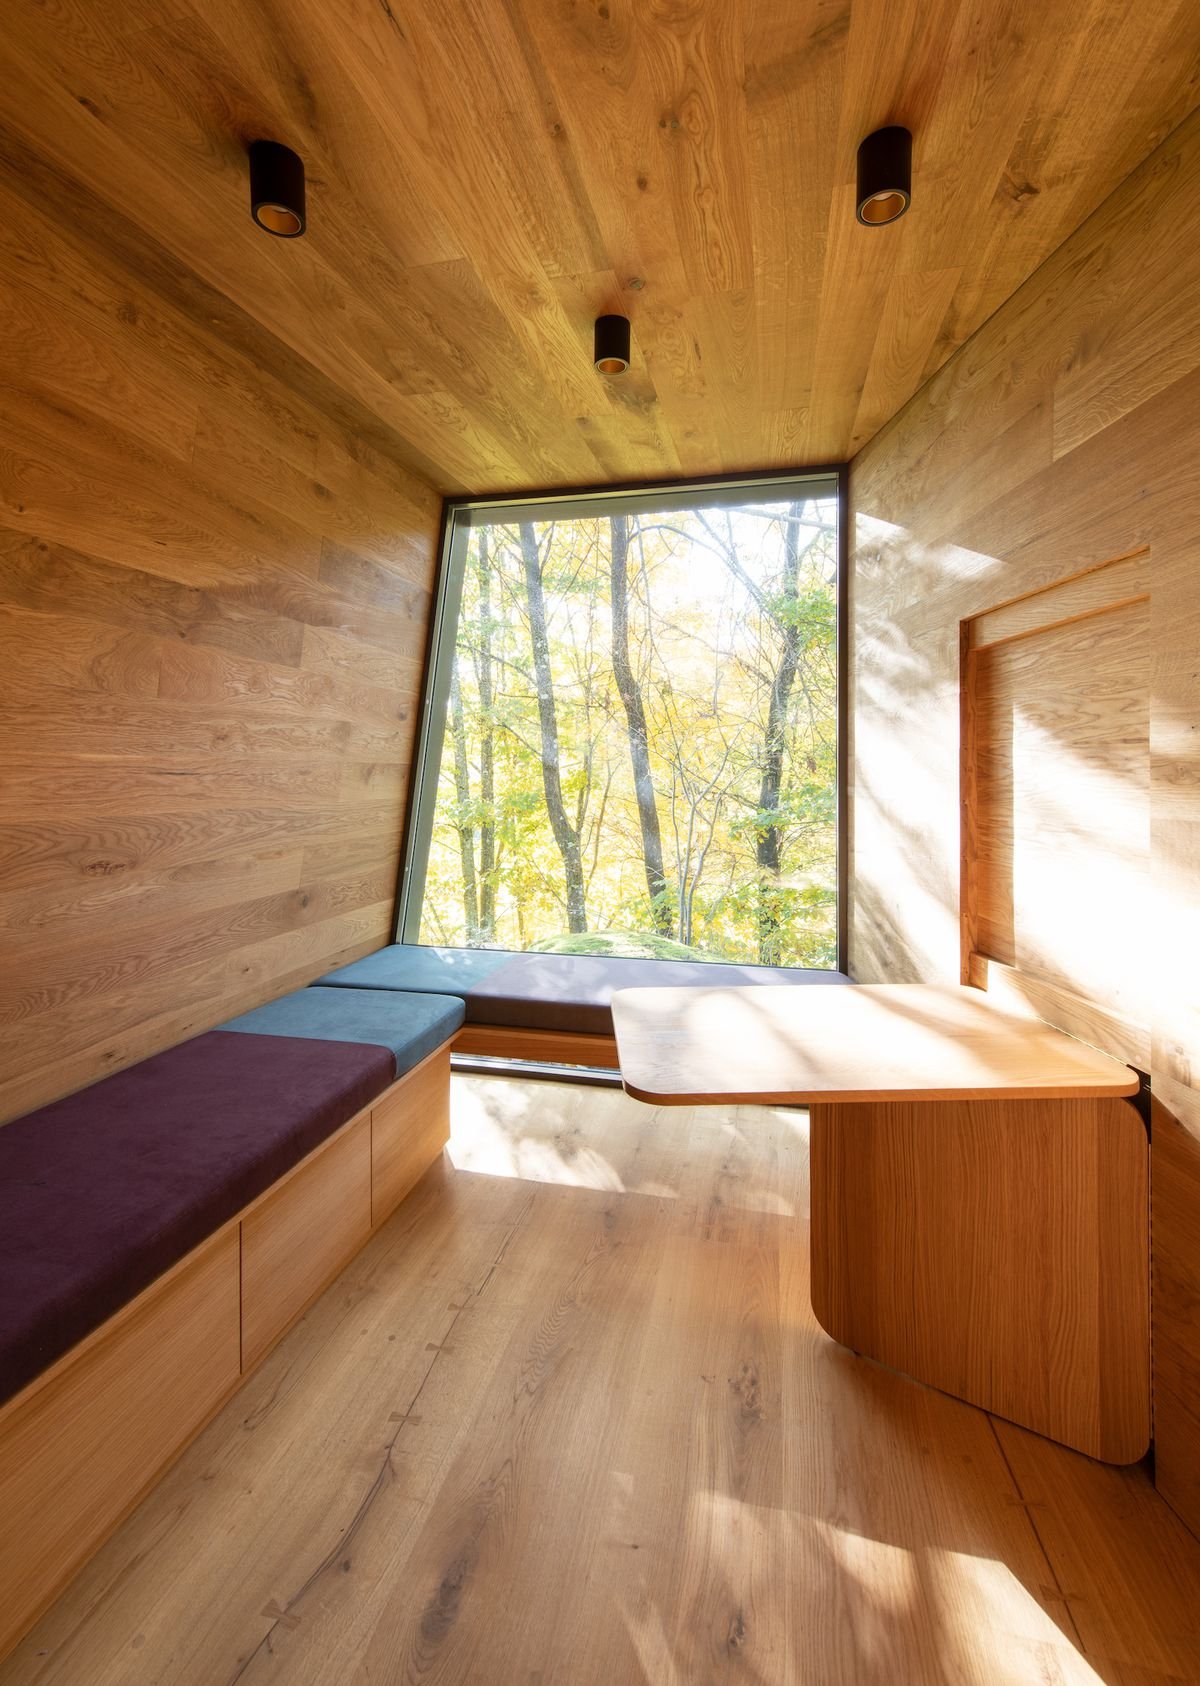 Sun-filled room with cushioned benches